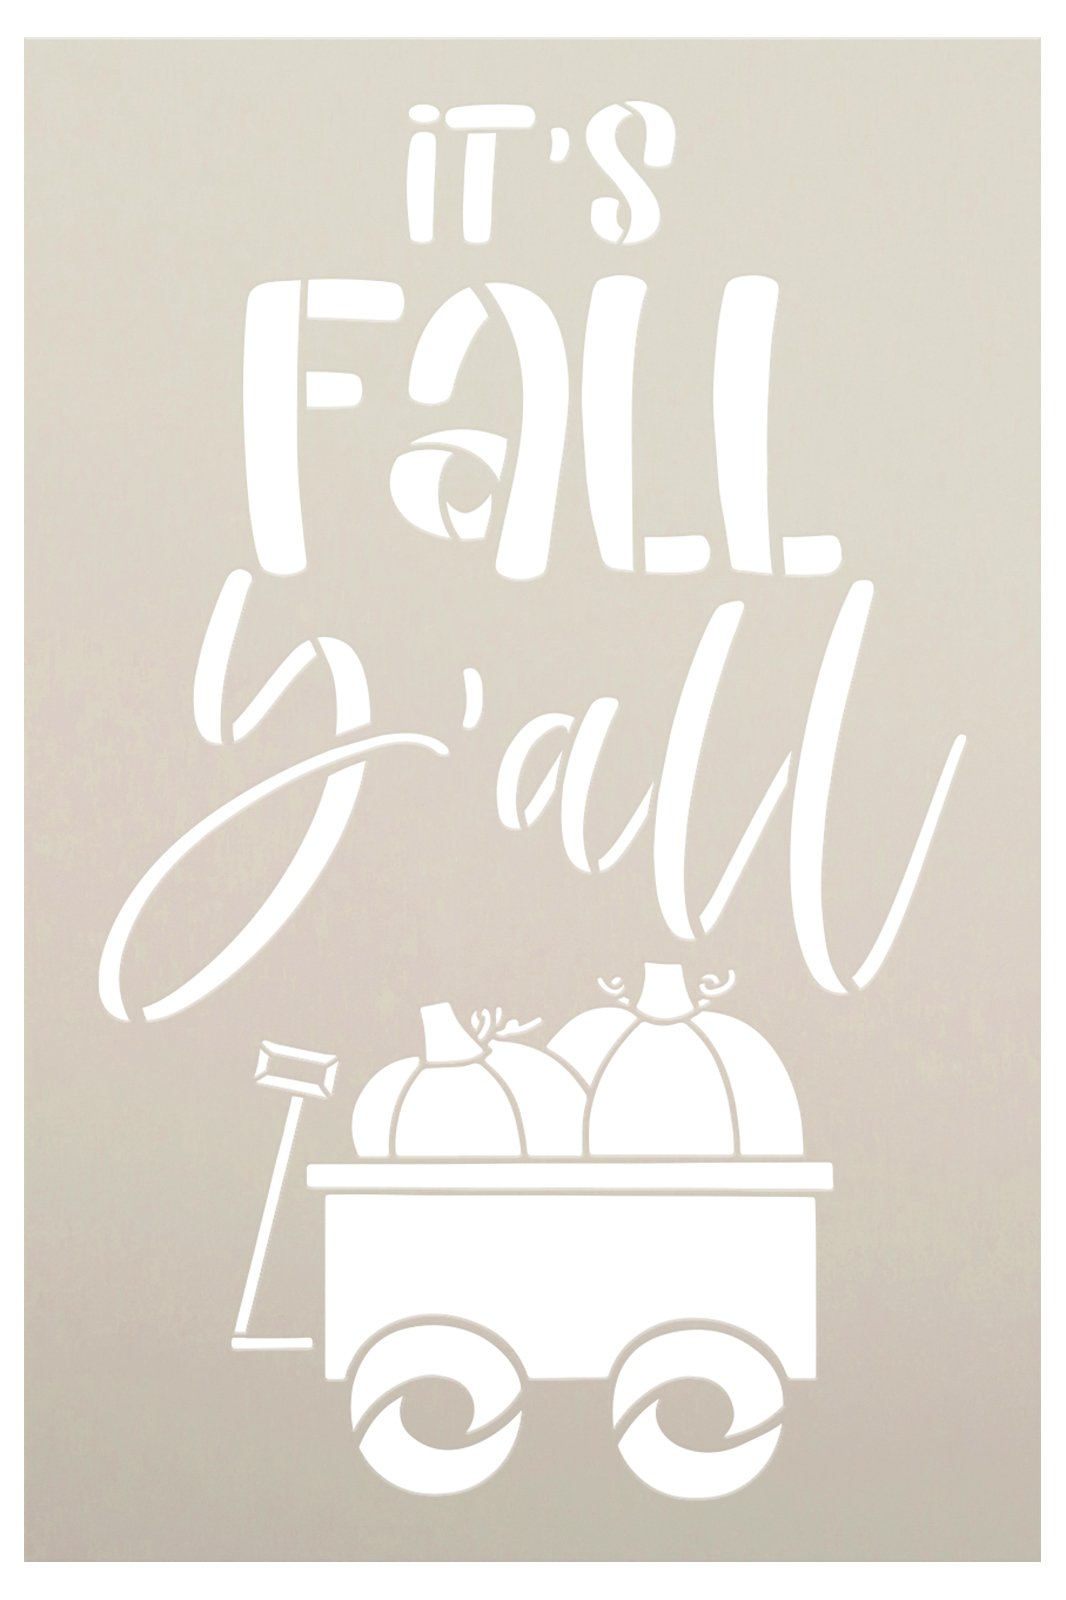 It's Fall Y'all Stencil by StudioR12   DIY Autumn Pumpkin Wagon Home Decor   Craft & Paint Wood Porch Sign   Reusable Mylar Template   Select Size